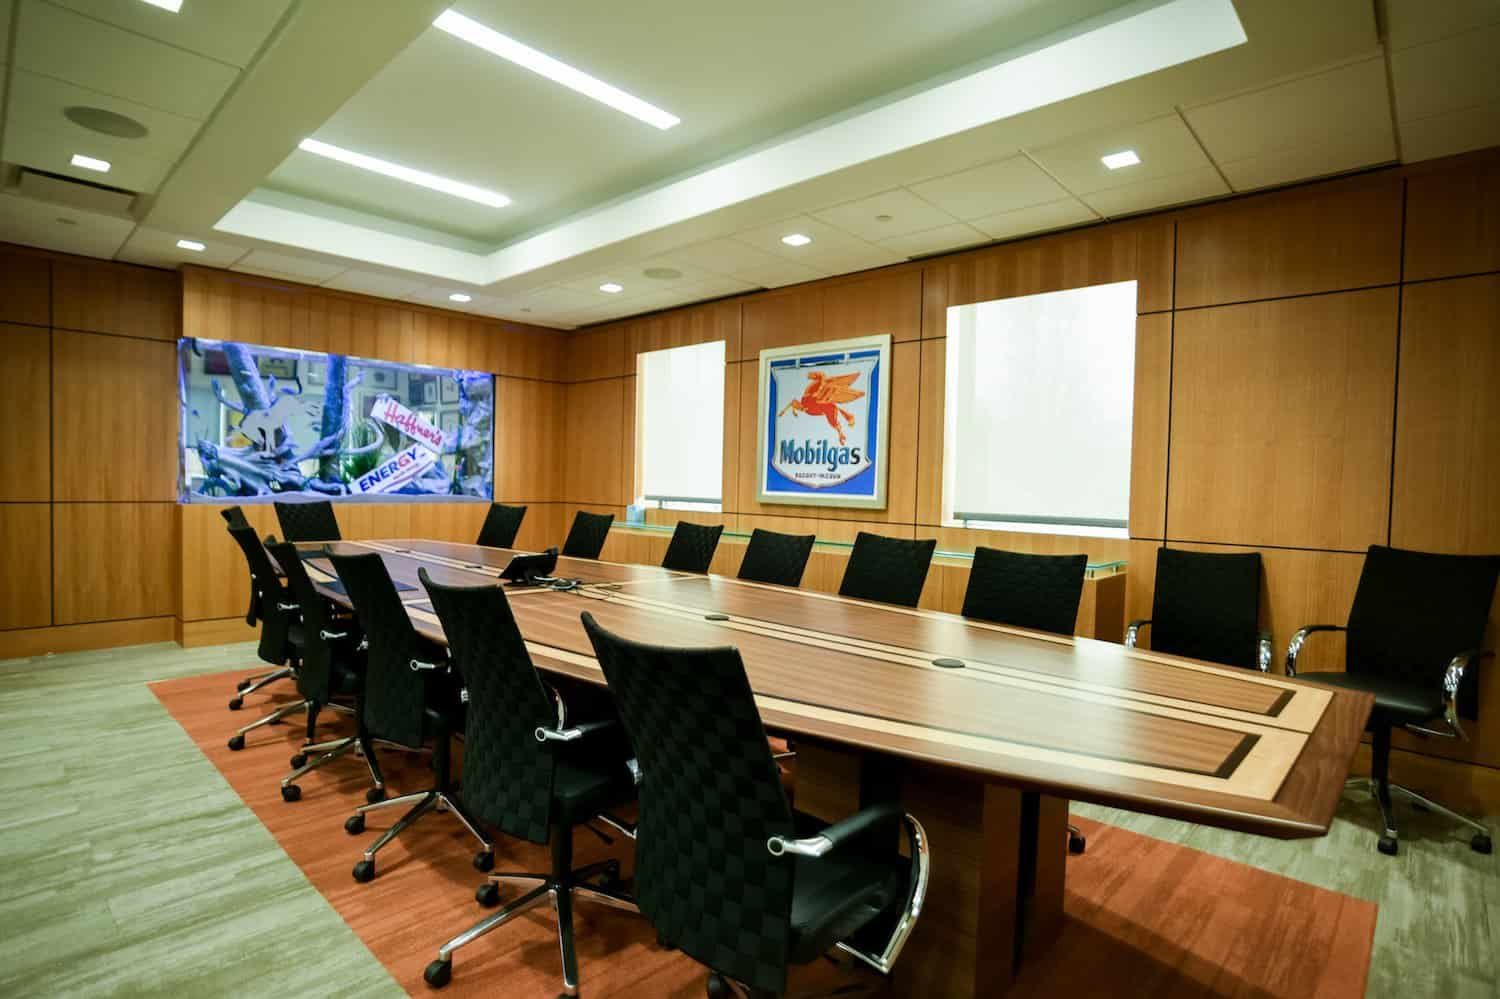 6 Conference Room Design Trends to Plan for in 2019